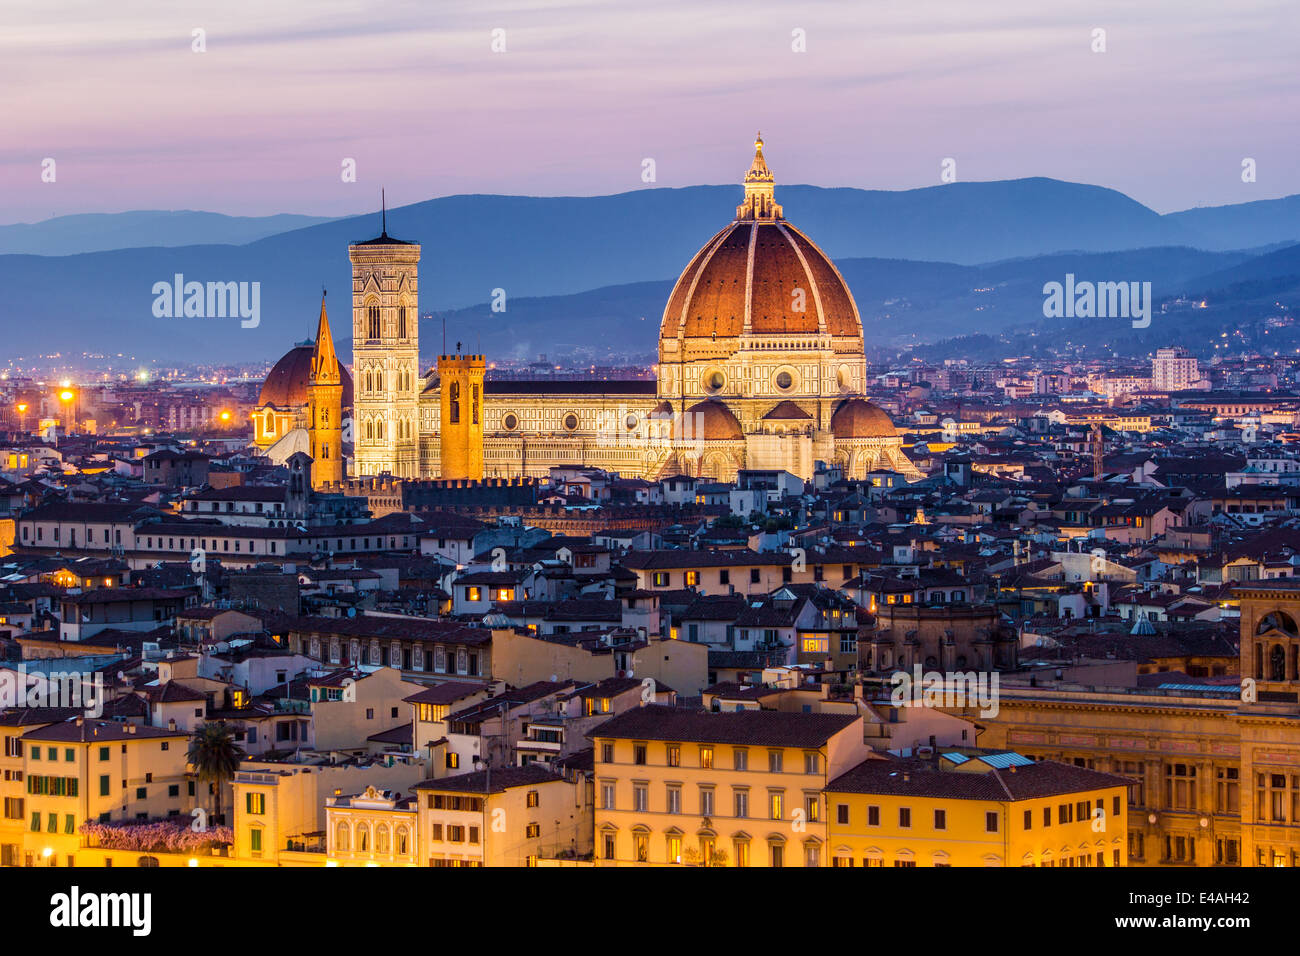 Florence, the Cathedral with the Brunelleschi Dome at sunset, with the city skyline. Tuscany, Italy - Stock Image